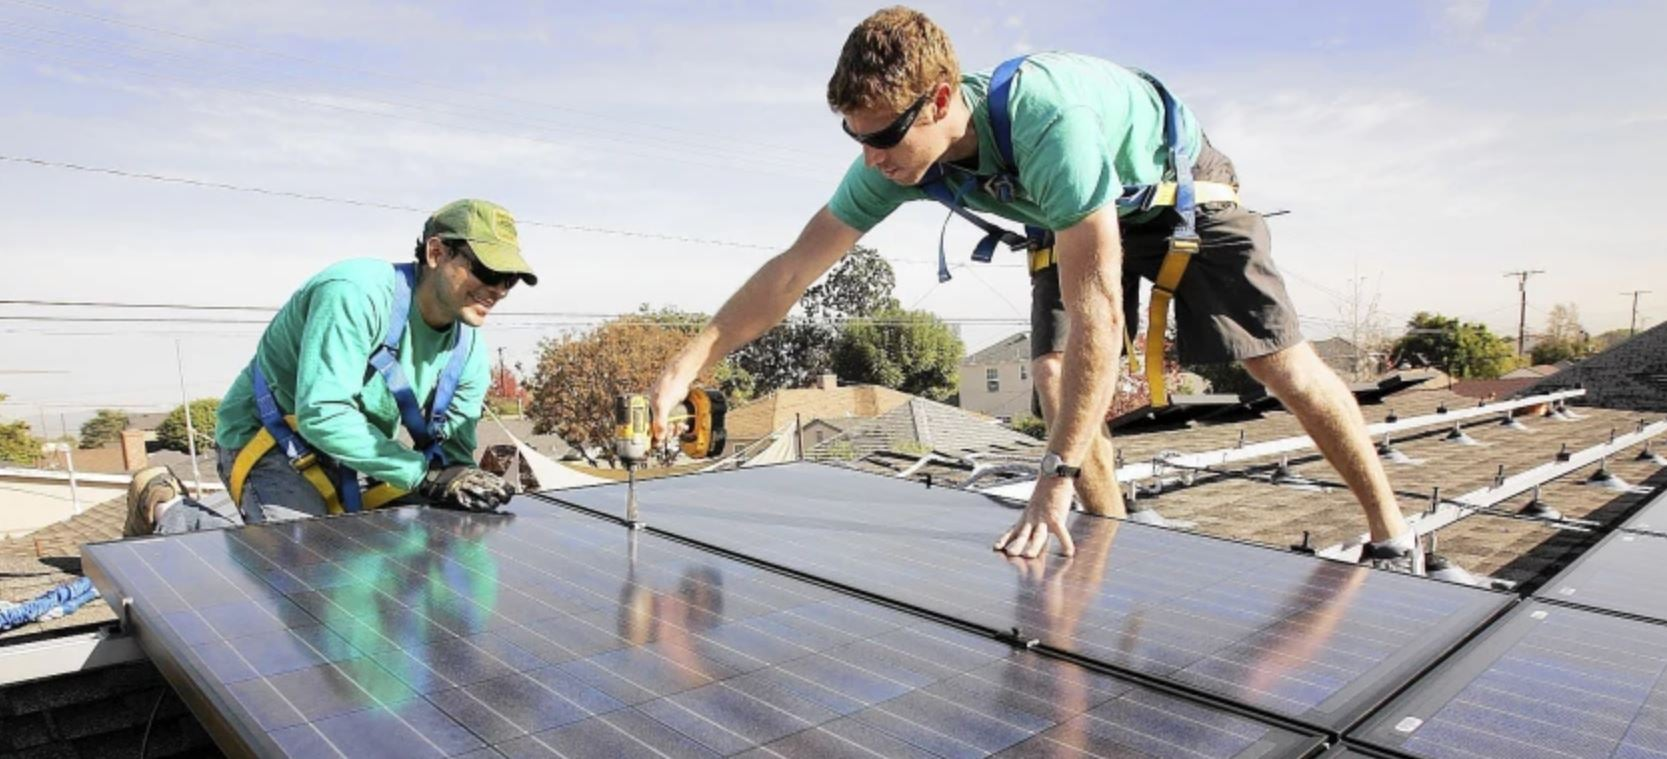 two men standing on top of solar panels